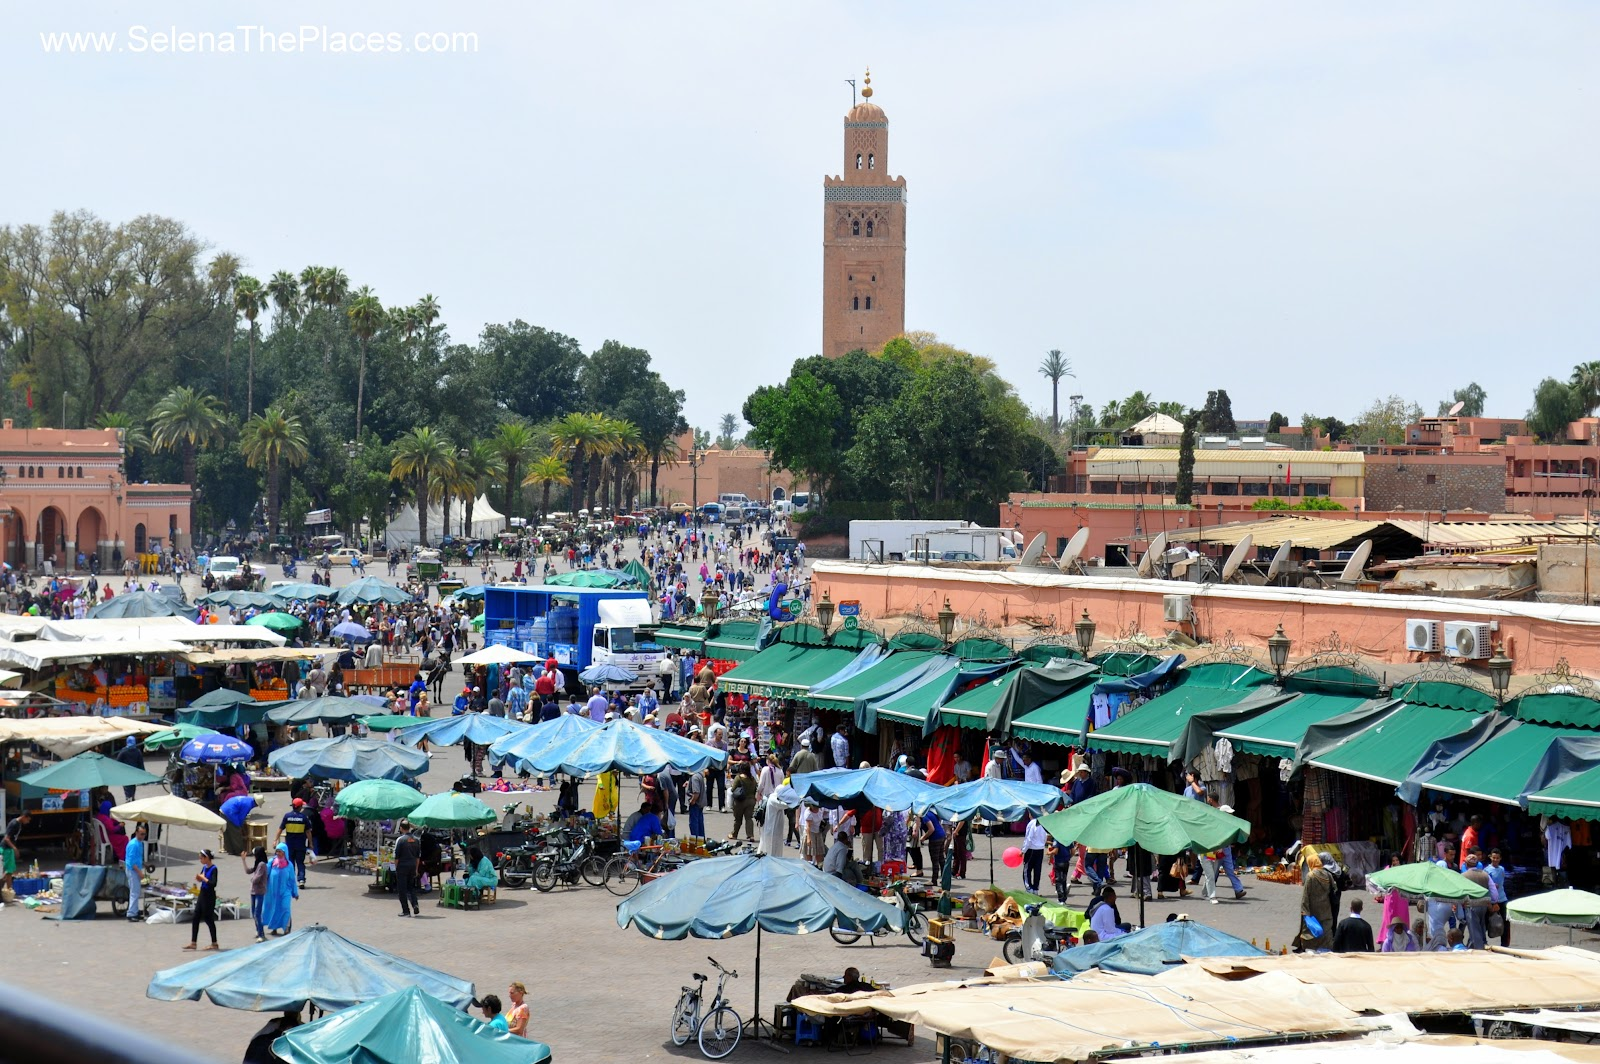 Jamaa el Fna - The Main Square of Marrakesh, Morocco